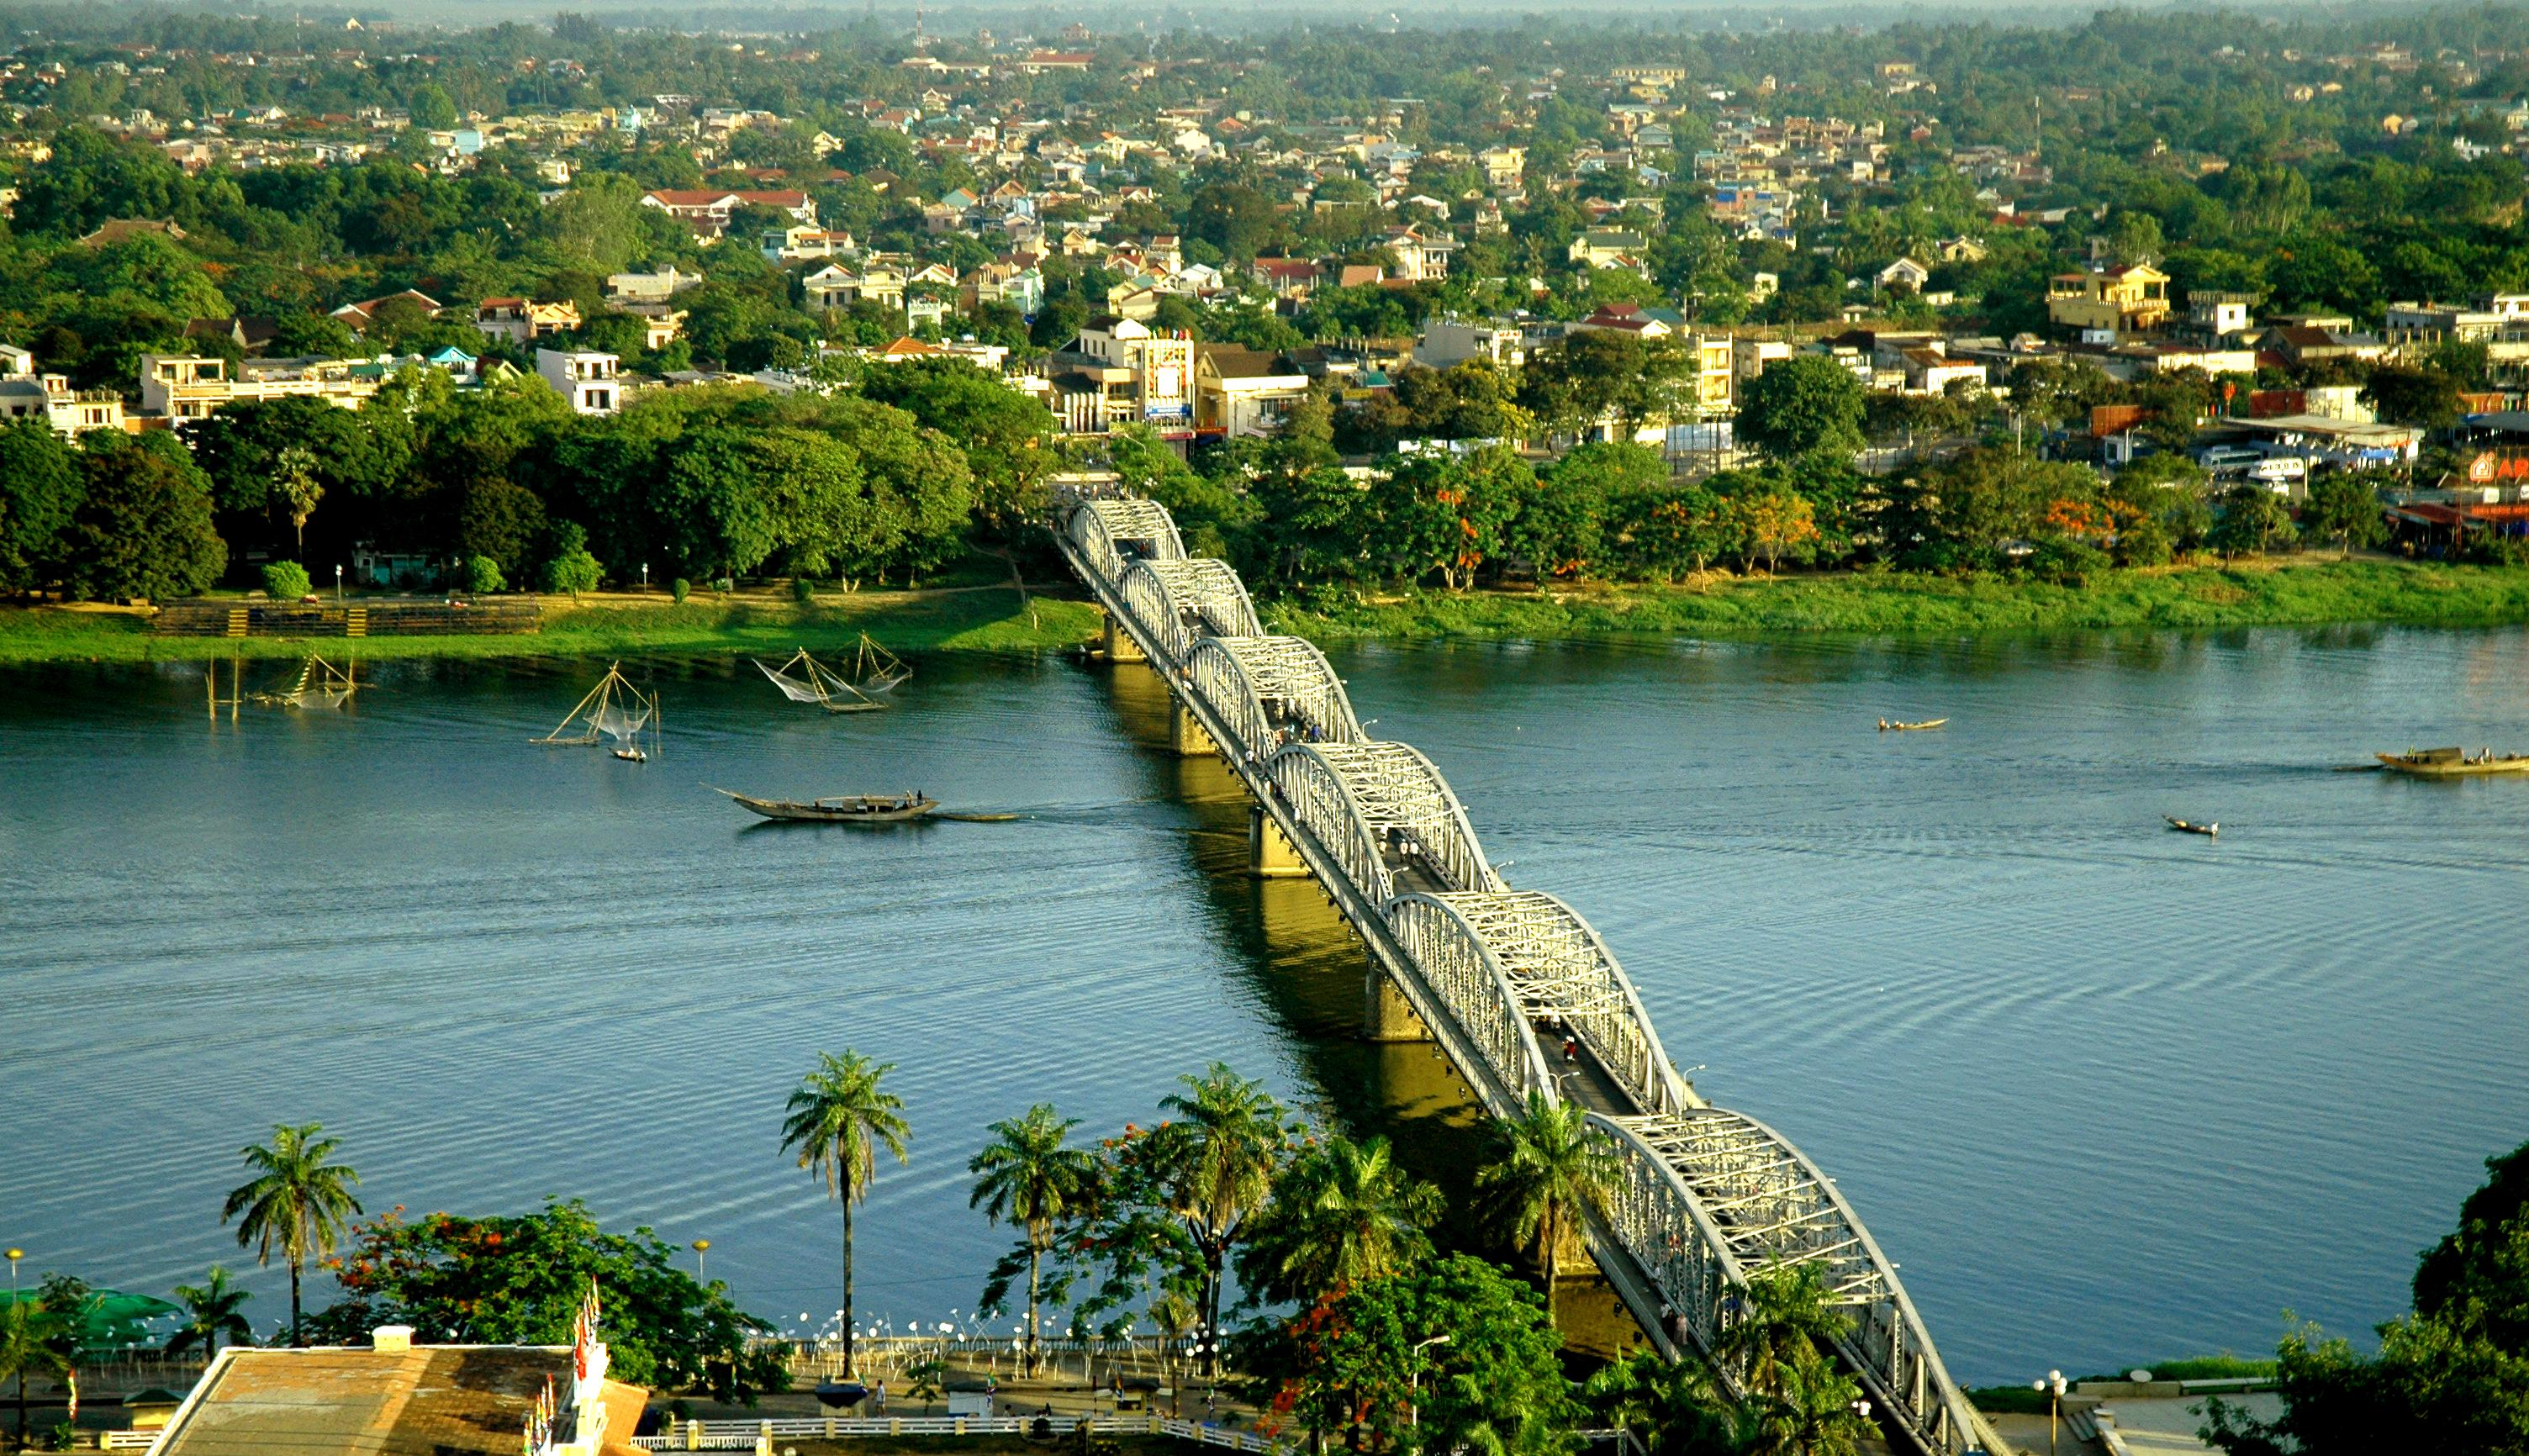 Perfume River - Truong Tien Bridge